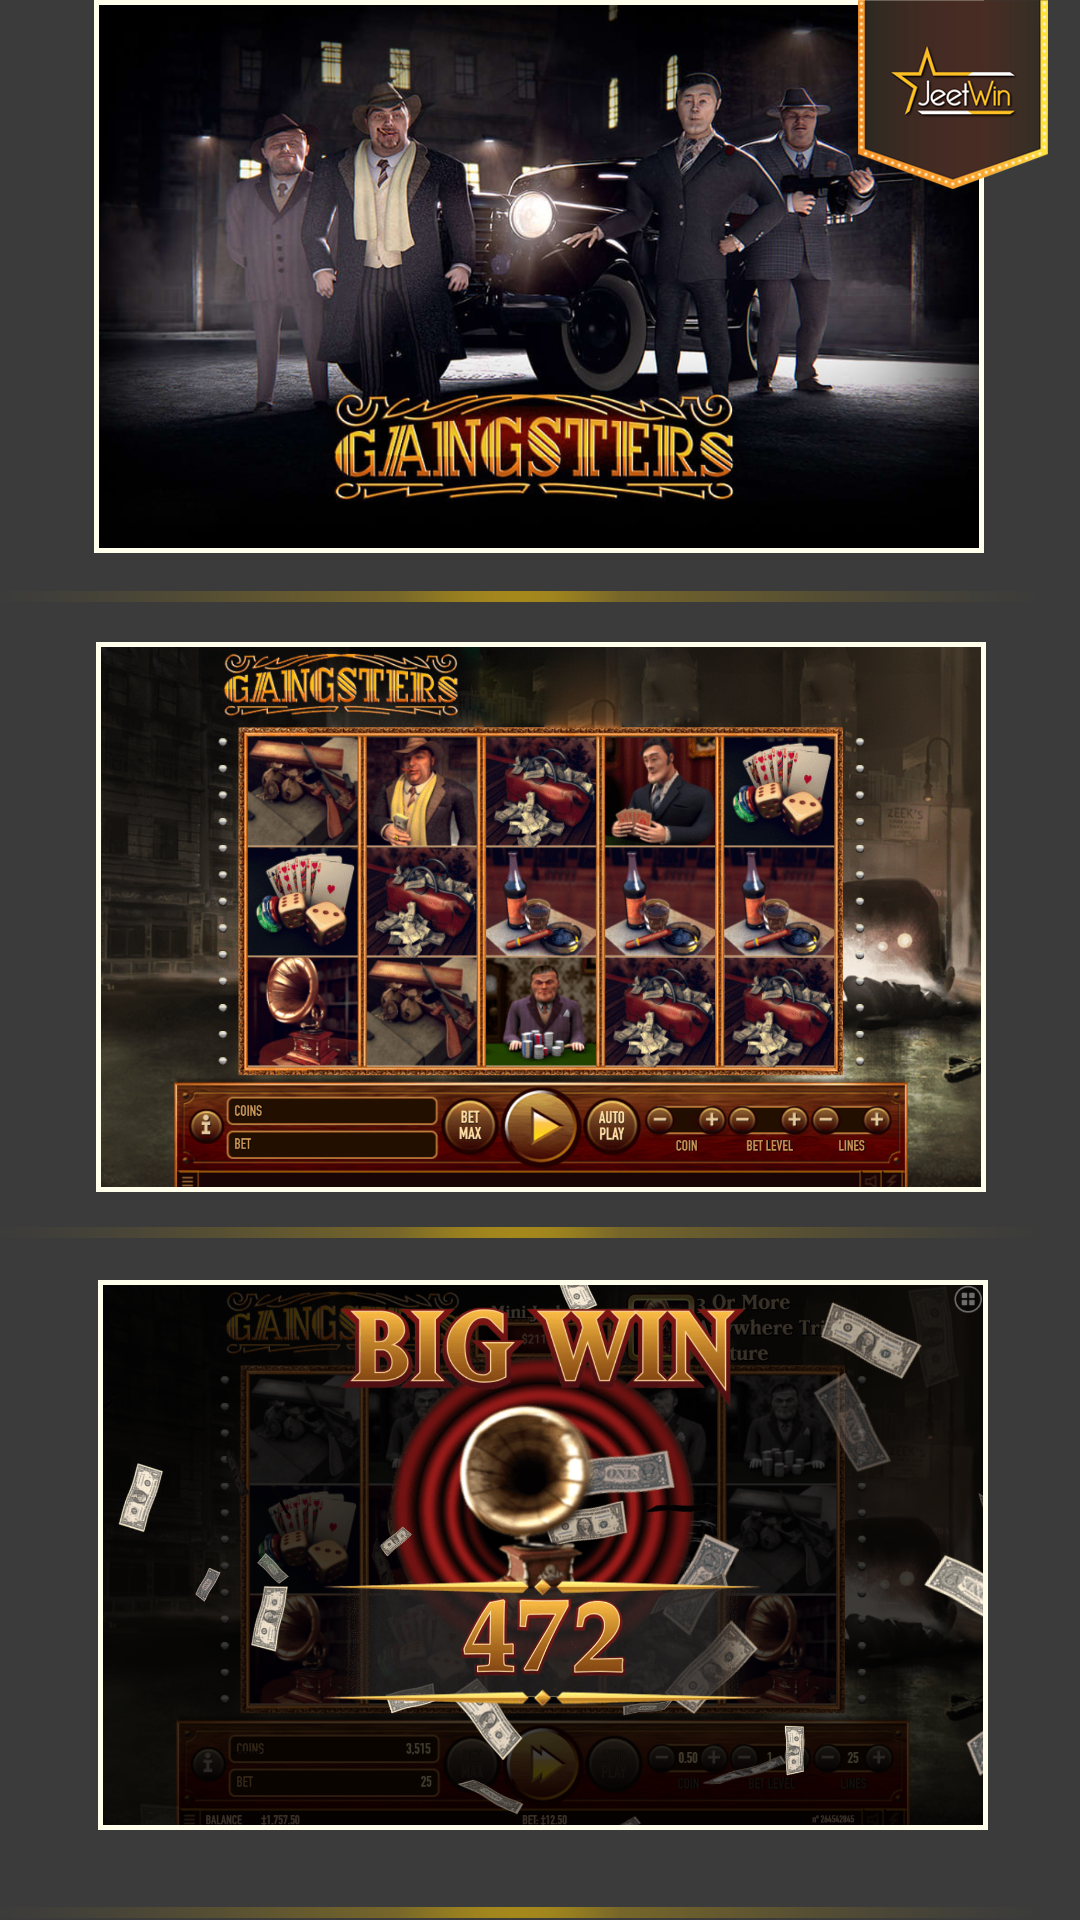 Gangster Slot Game. Play Like a Gangster, Win Like a